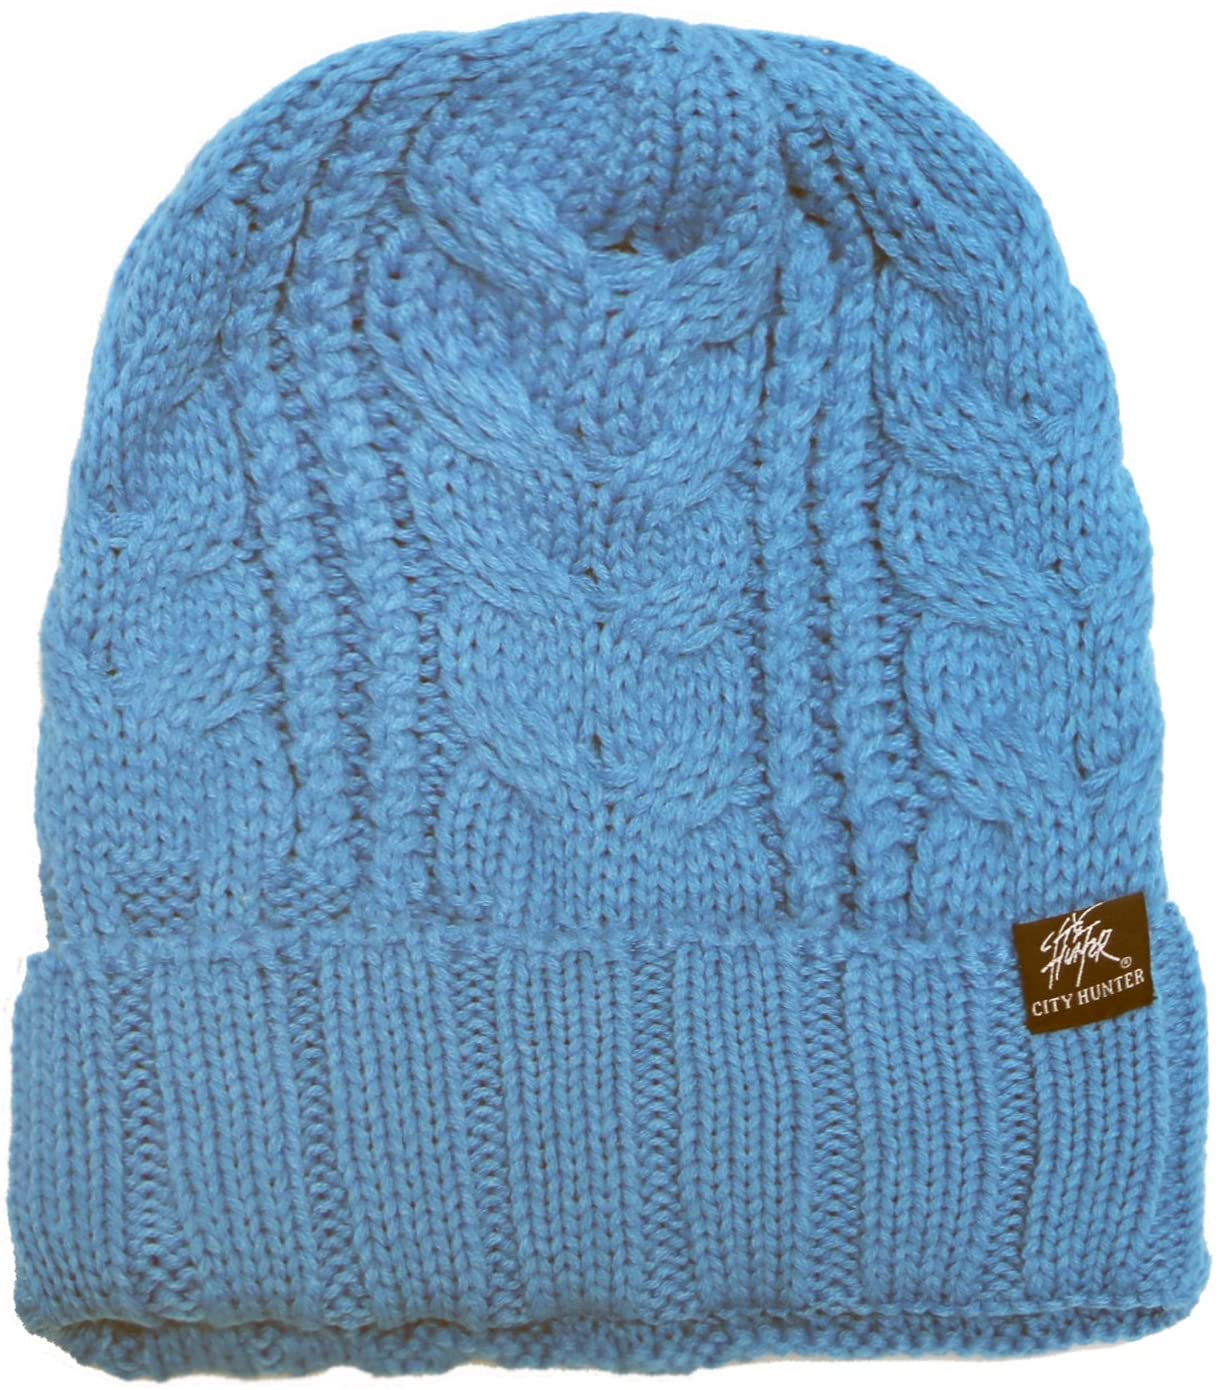 City Hunter Ck1051 Solid Knit Beanie Hat - Turquoise